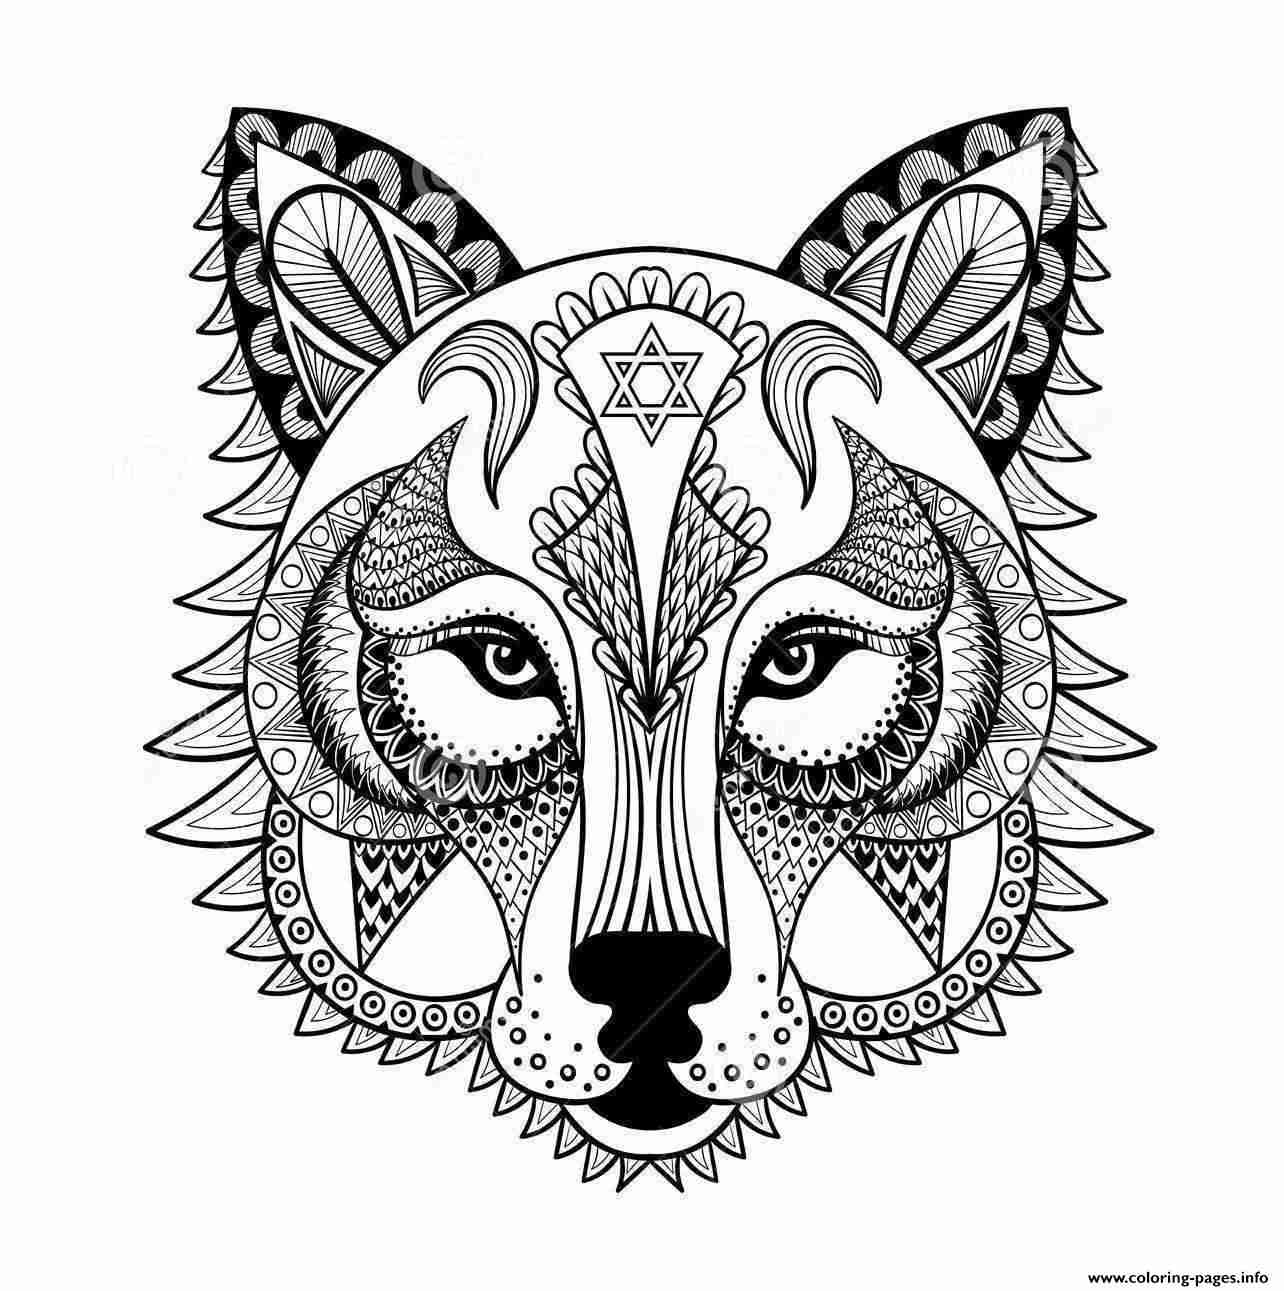 1284x1291 Peachy Stress Coloring Pages Colouring For Adults Anti Printables